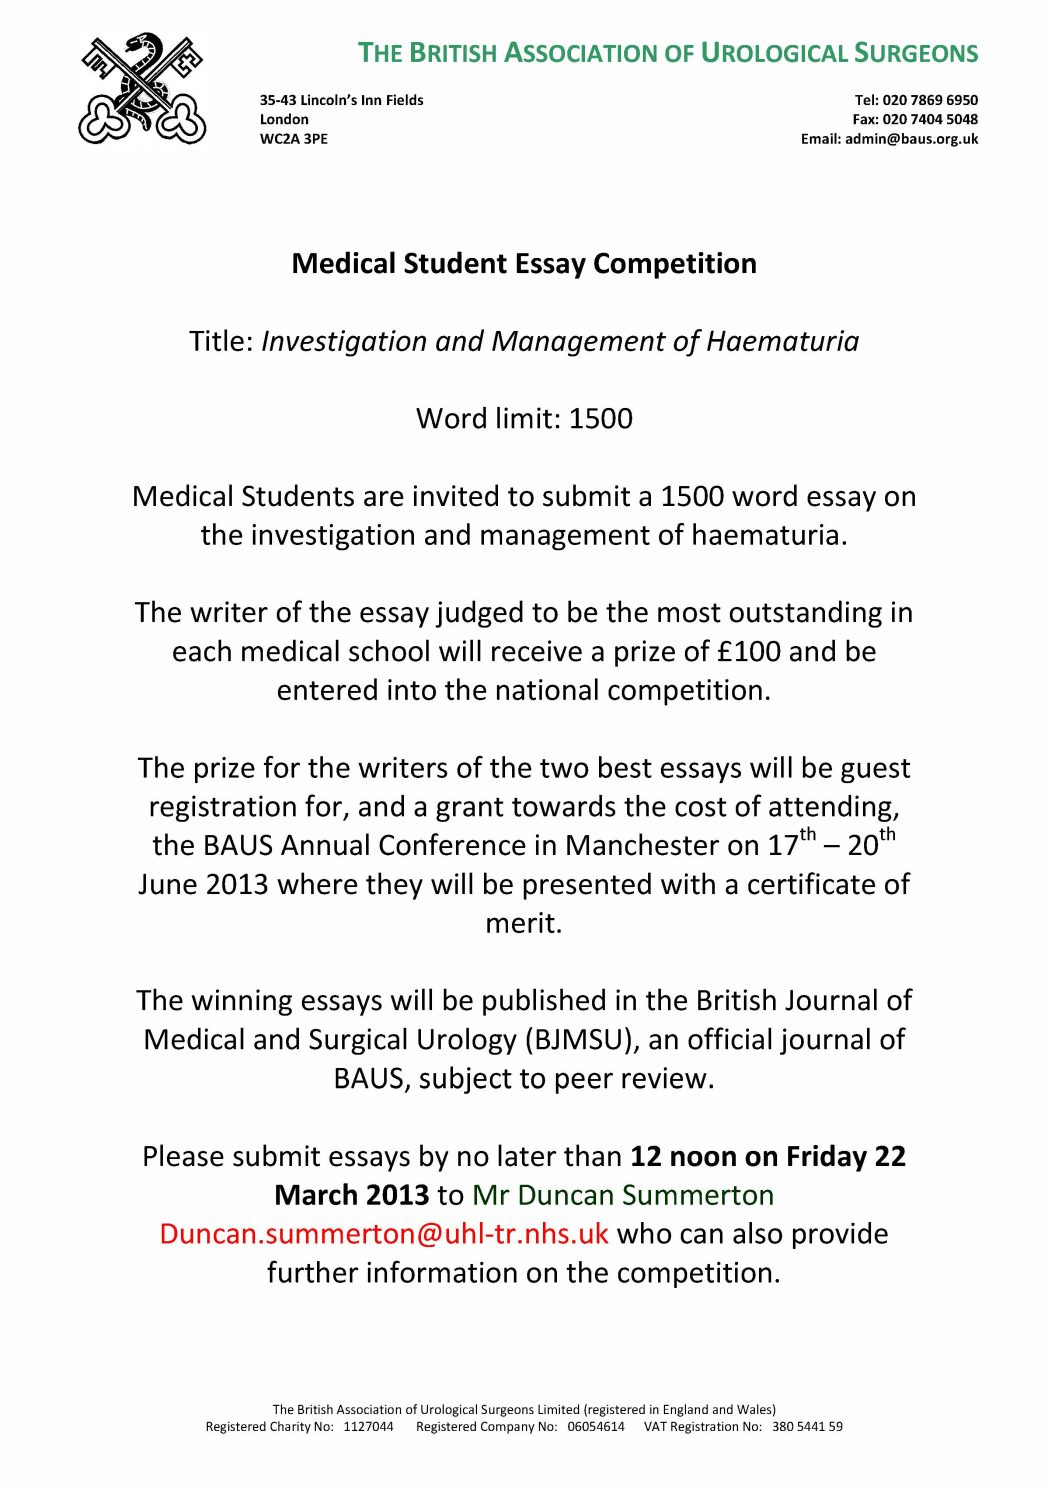 baus medical student essay competition